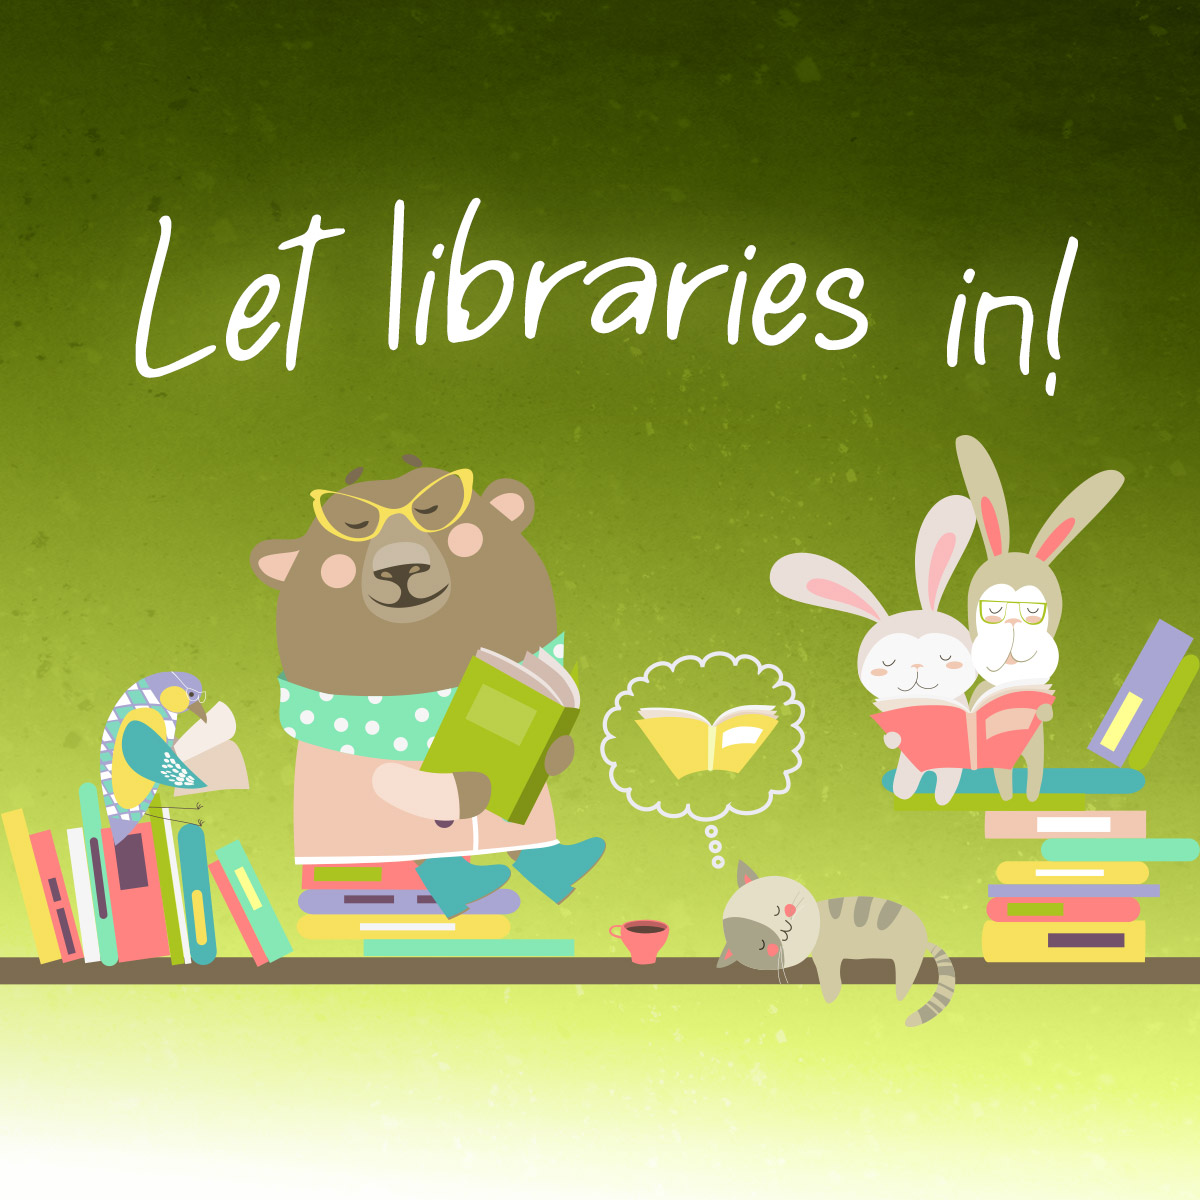 Let Libraries In